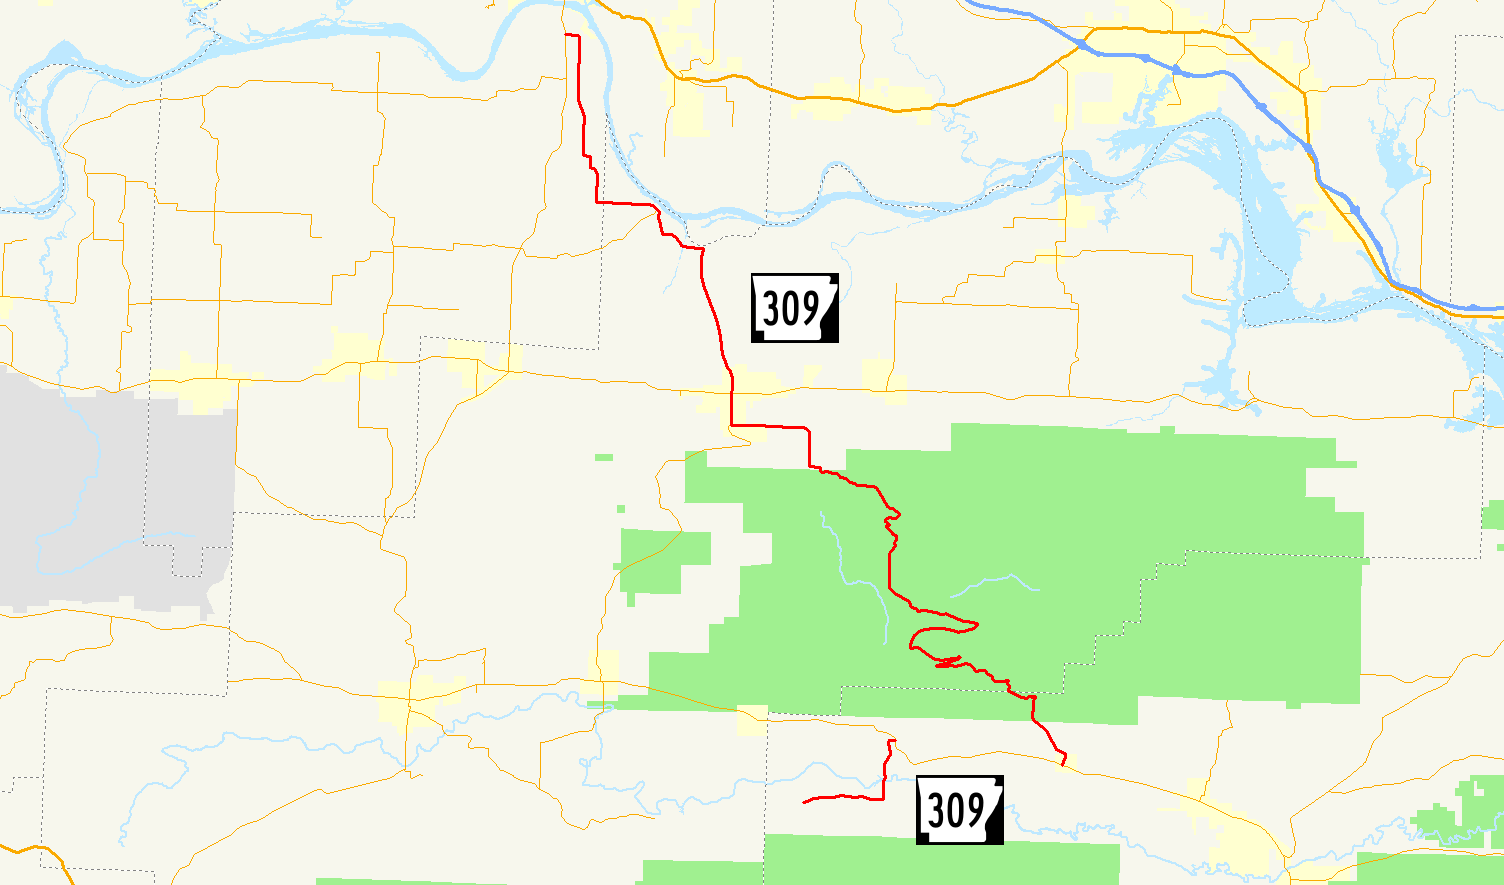 Arkansas Highway 309 - Wikipedia